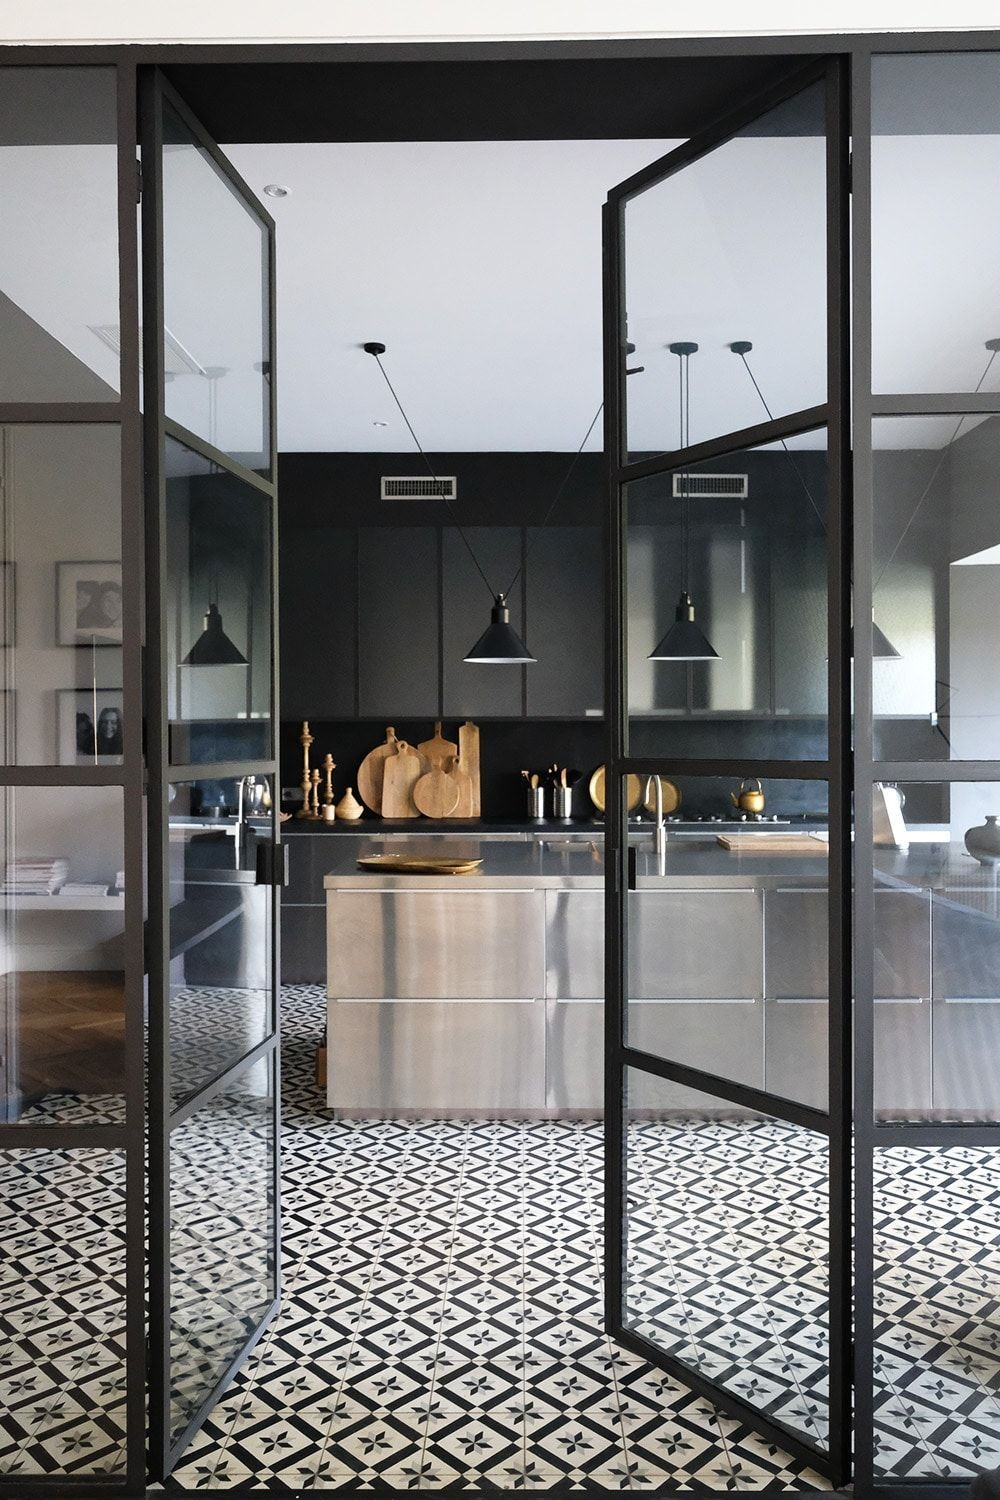 Magnificient Kitchen Floor Ideas For Your Home27